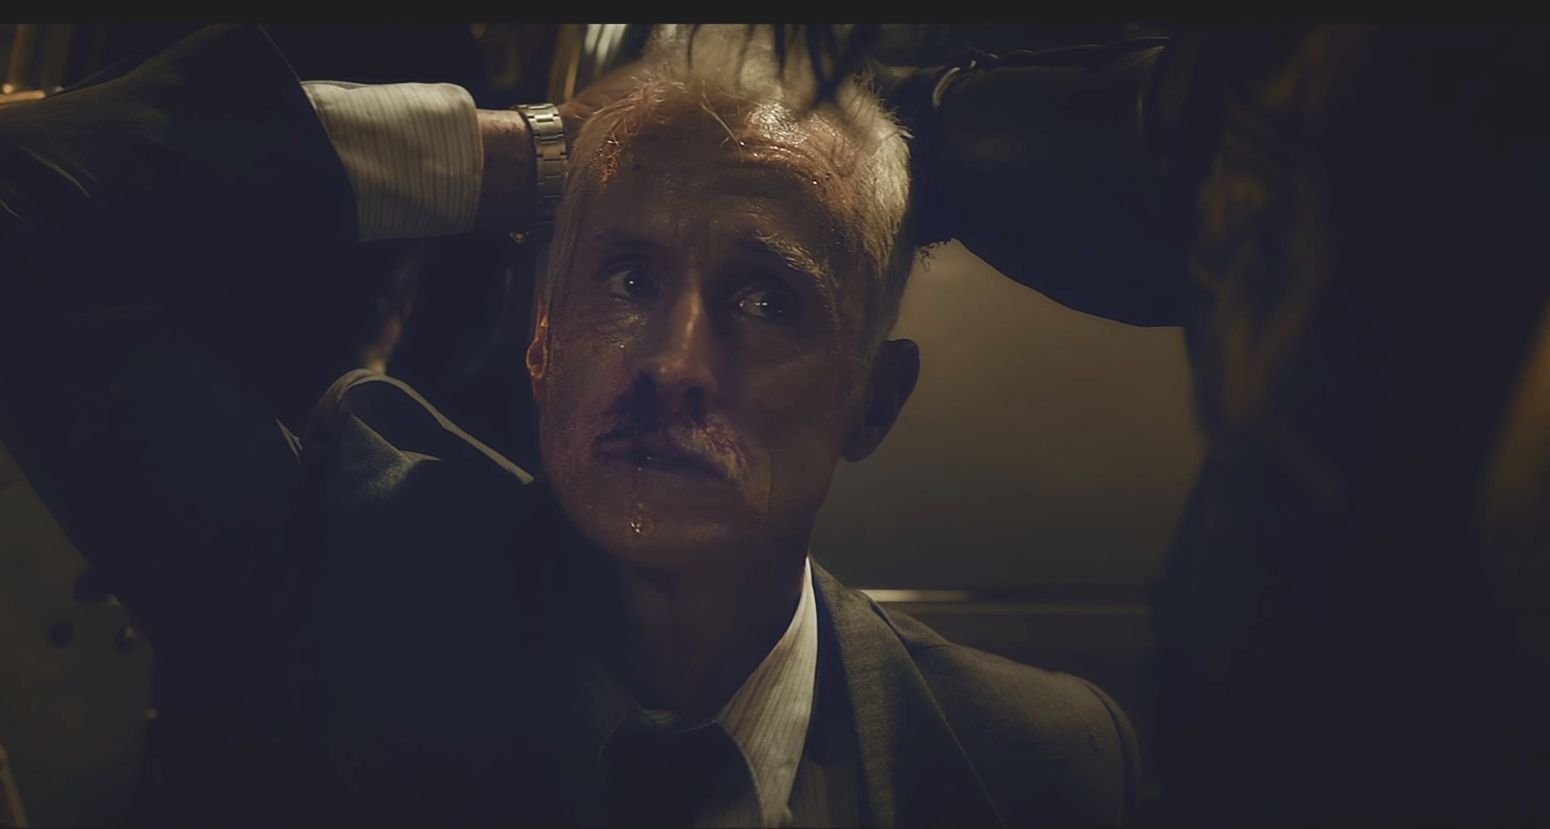 Tony's father Howard Stark killed by the Winter Soldier